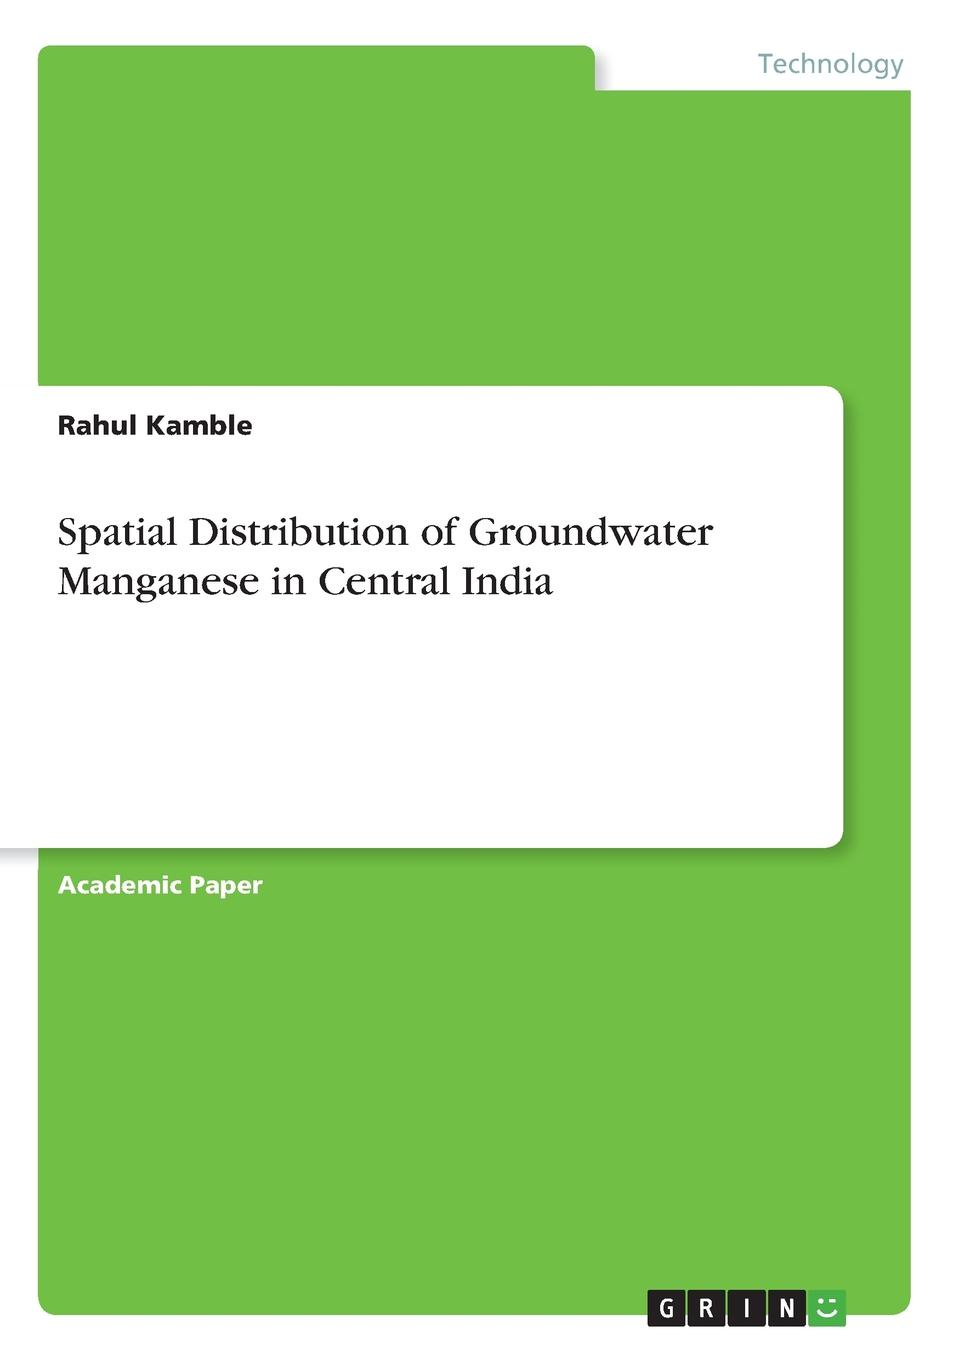 Rahul Kamble Spatial Distribution of Groundwater Manganese in Central India experimental and simulation study for stress concentration factor